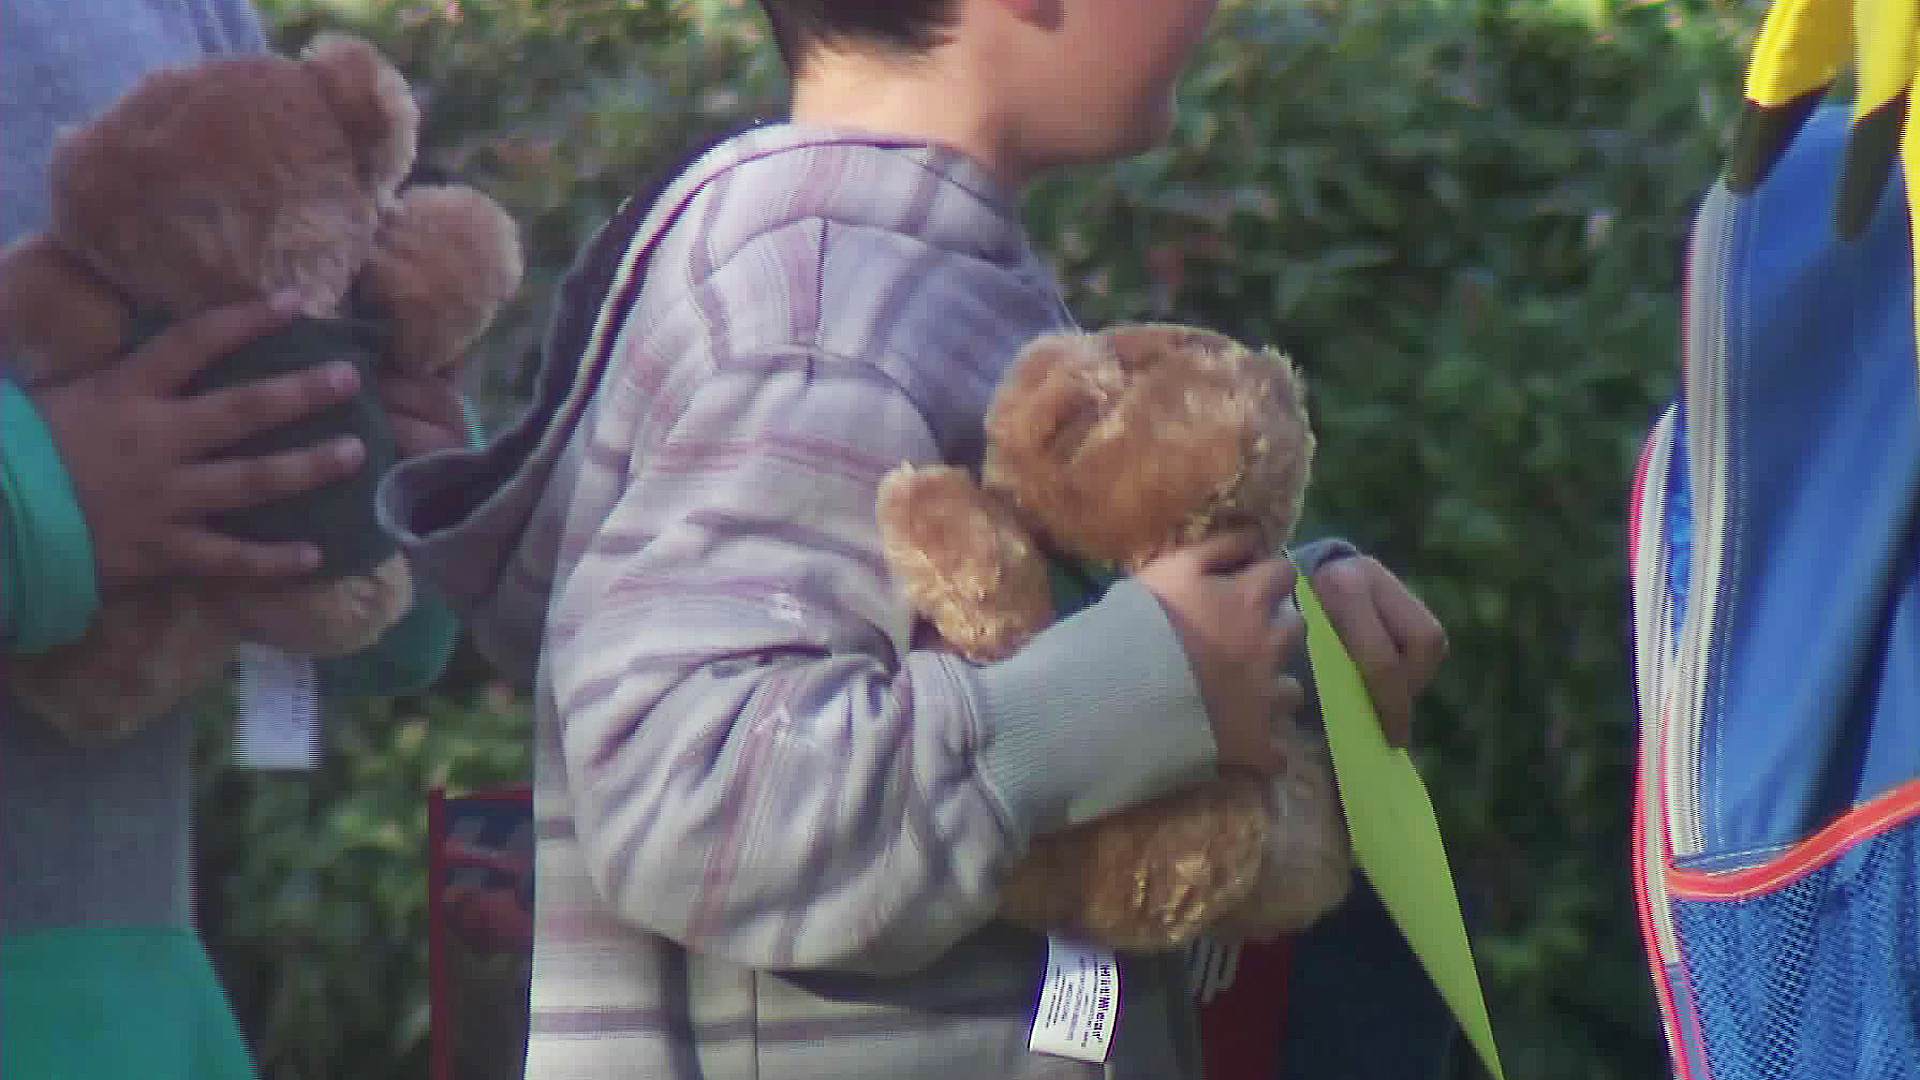 A student holds a teddy bear at Castle View Elementary School in Riverside on Nov. 6, 2017. (Credit: KTLA)